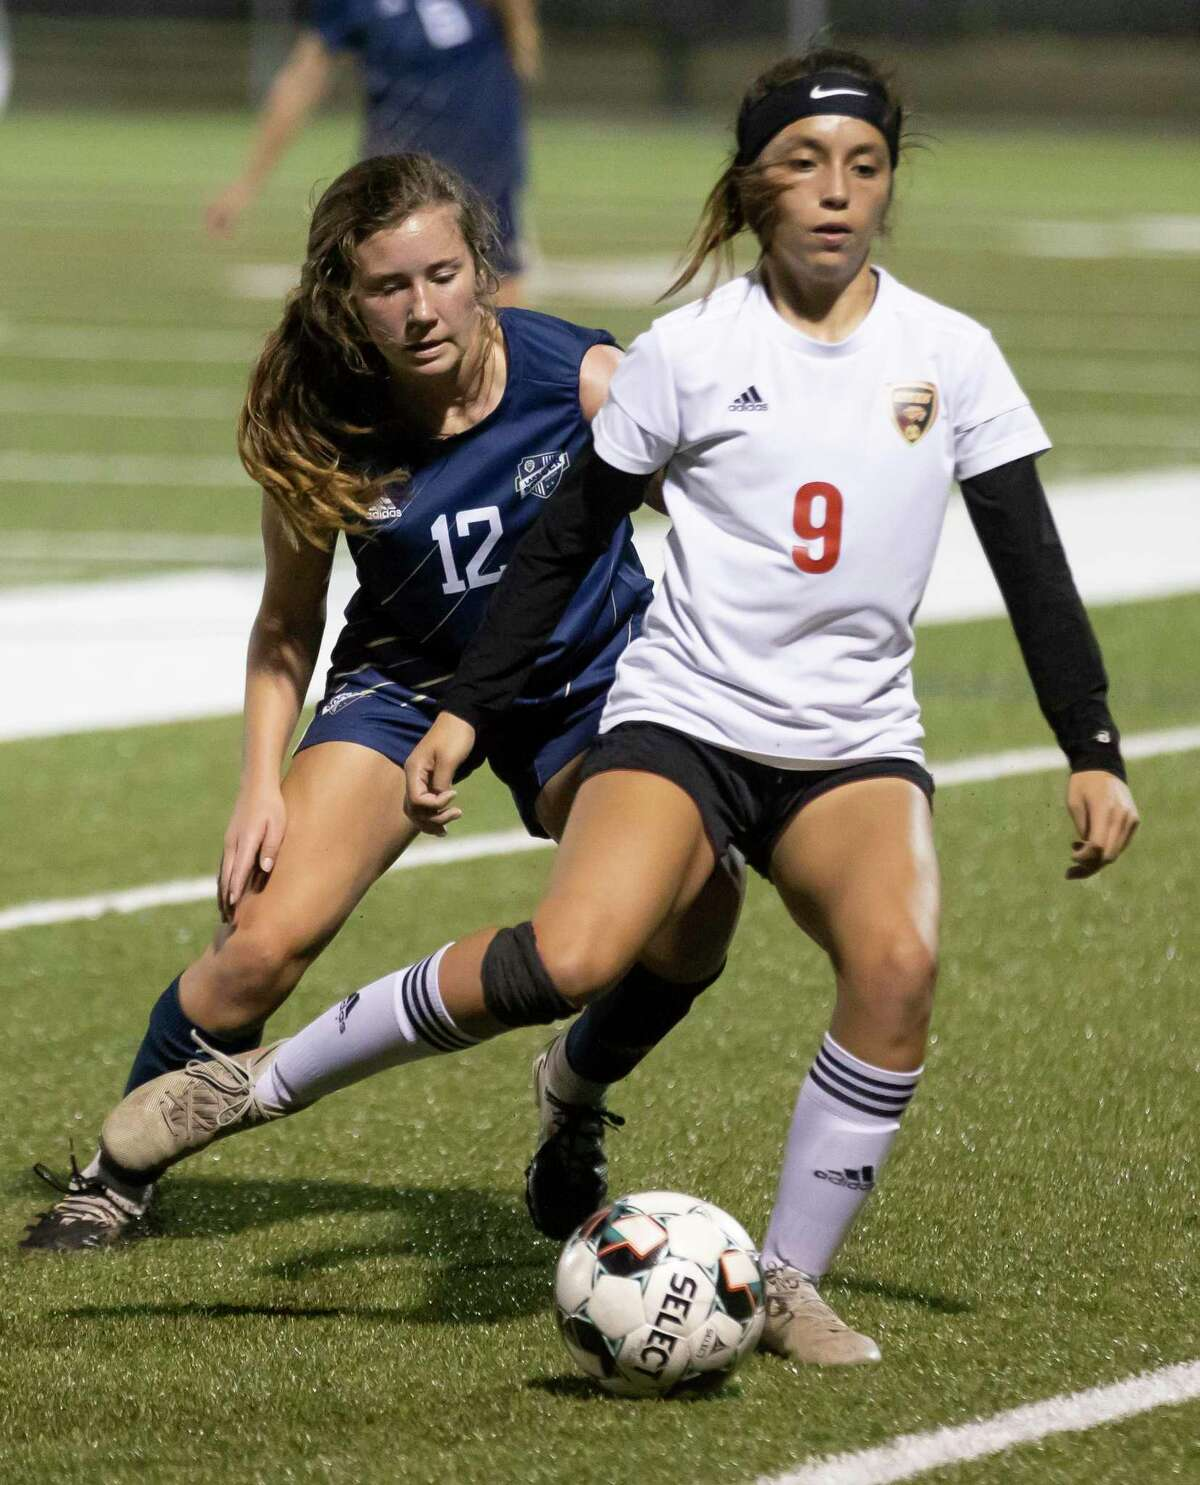 Caney Creek Elyn Zamudio (9) takes control of a throw in while under pressure from Lake Creek Kate Coleman (12) during the first half of a District 20-5A girls soccer game at Lake Creek High School, Friday, March 12, 2021, in Montgomery.